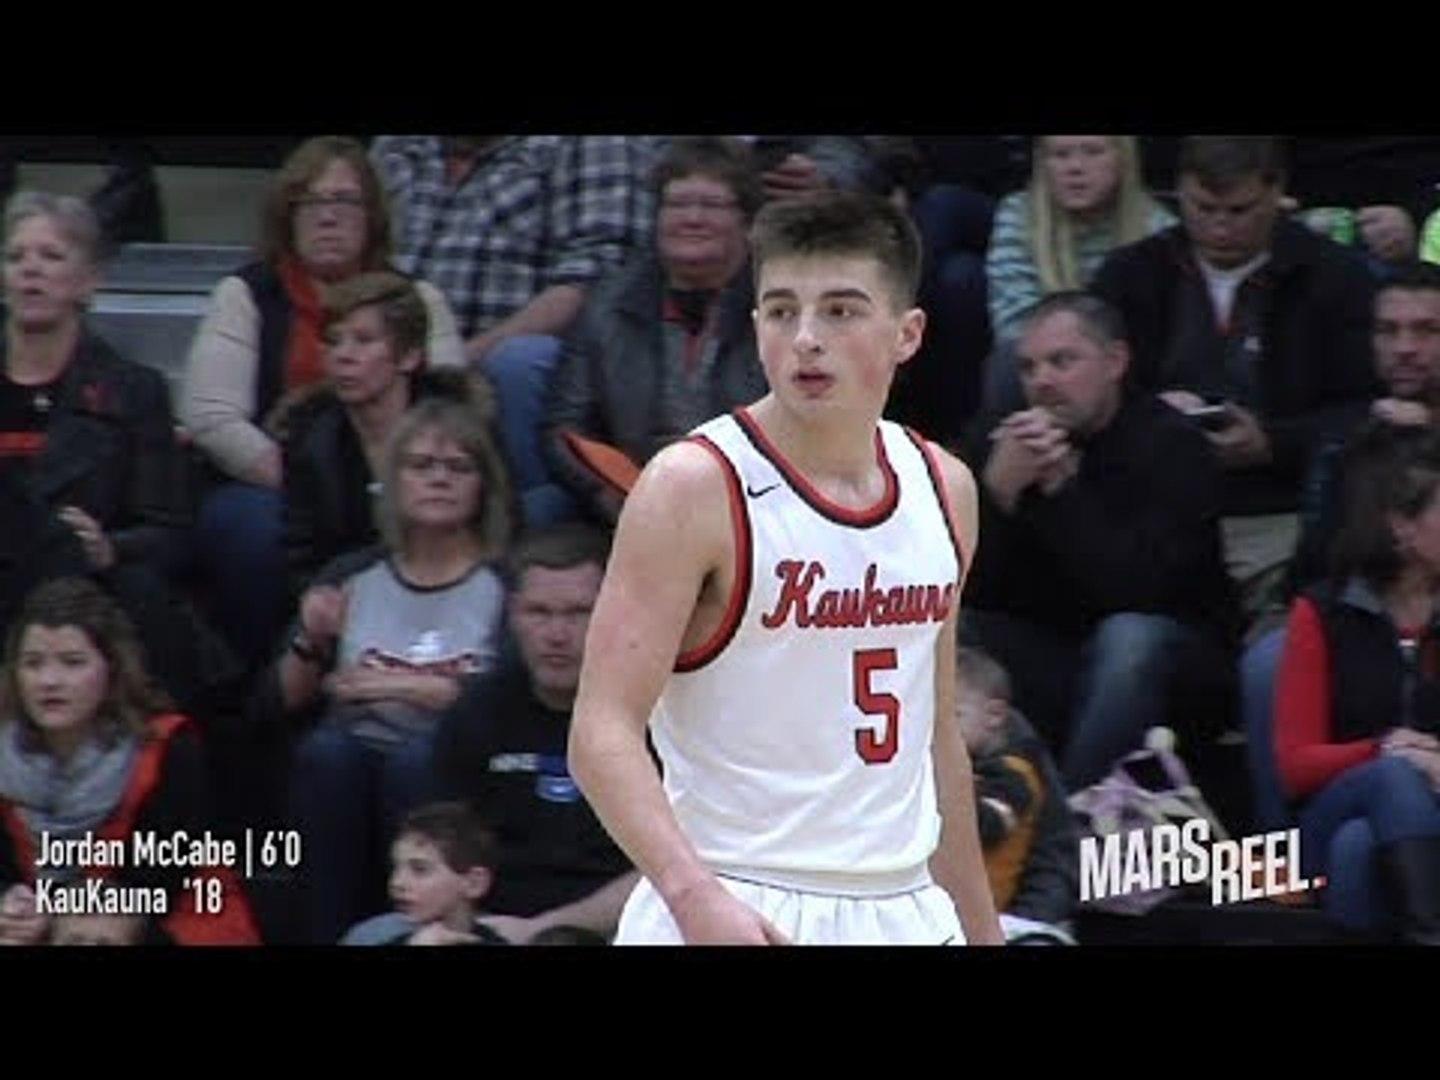 Jordan McCabe BREAKS ANKLES & DROPS DIMES | OFFICIAL JUNIOR SEASON MIX!